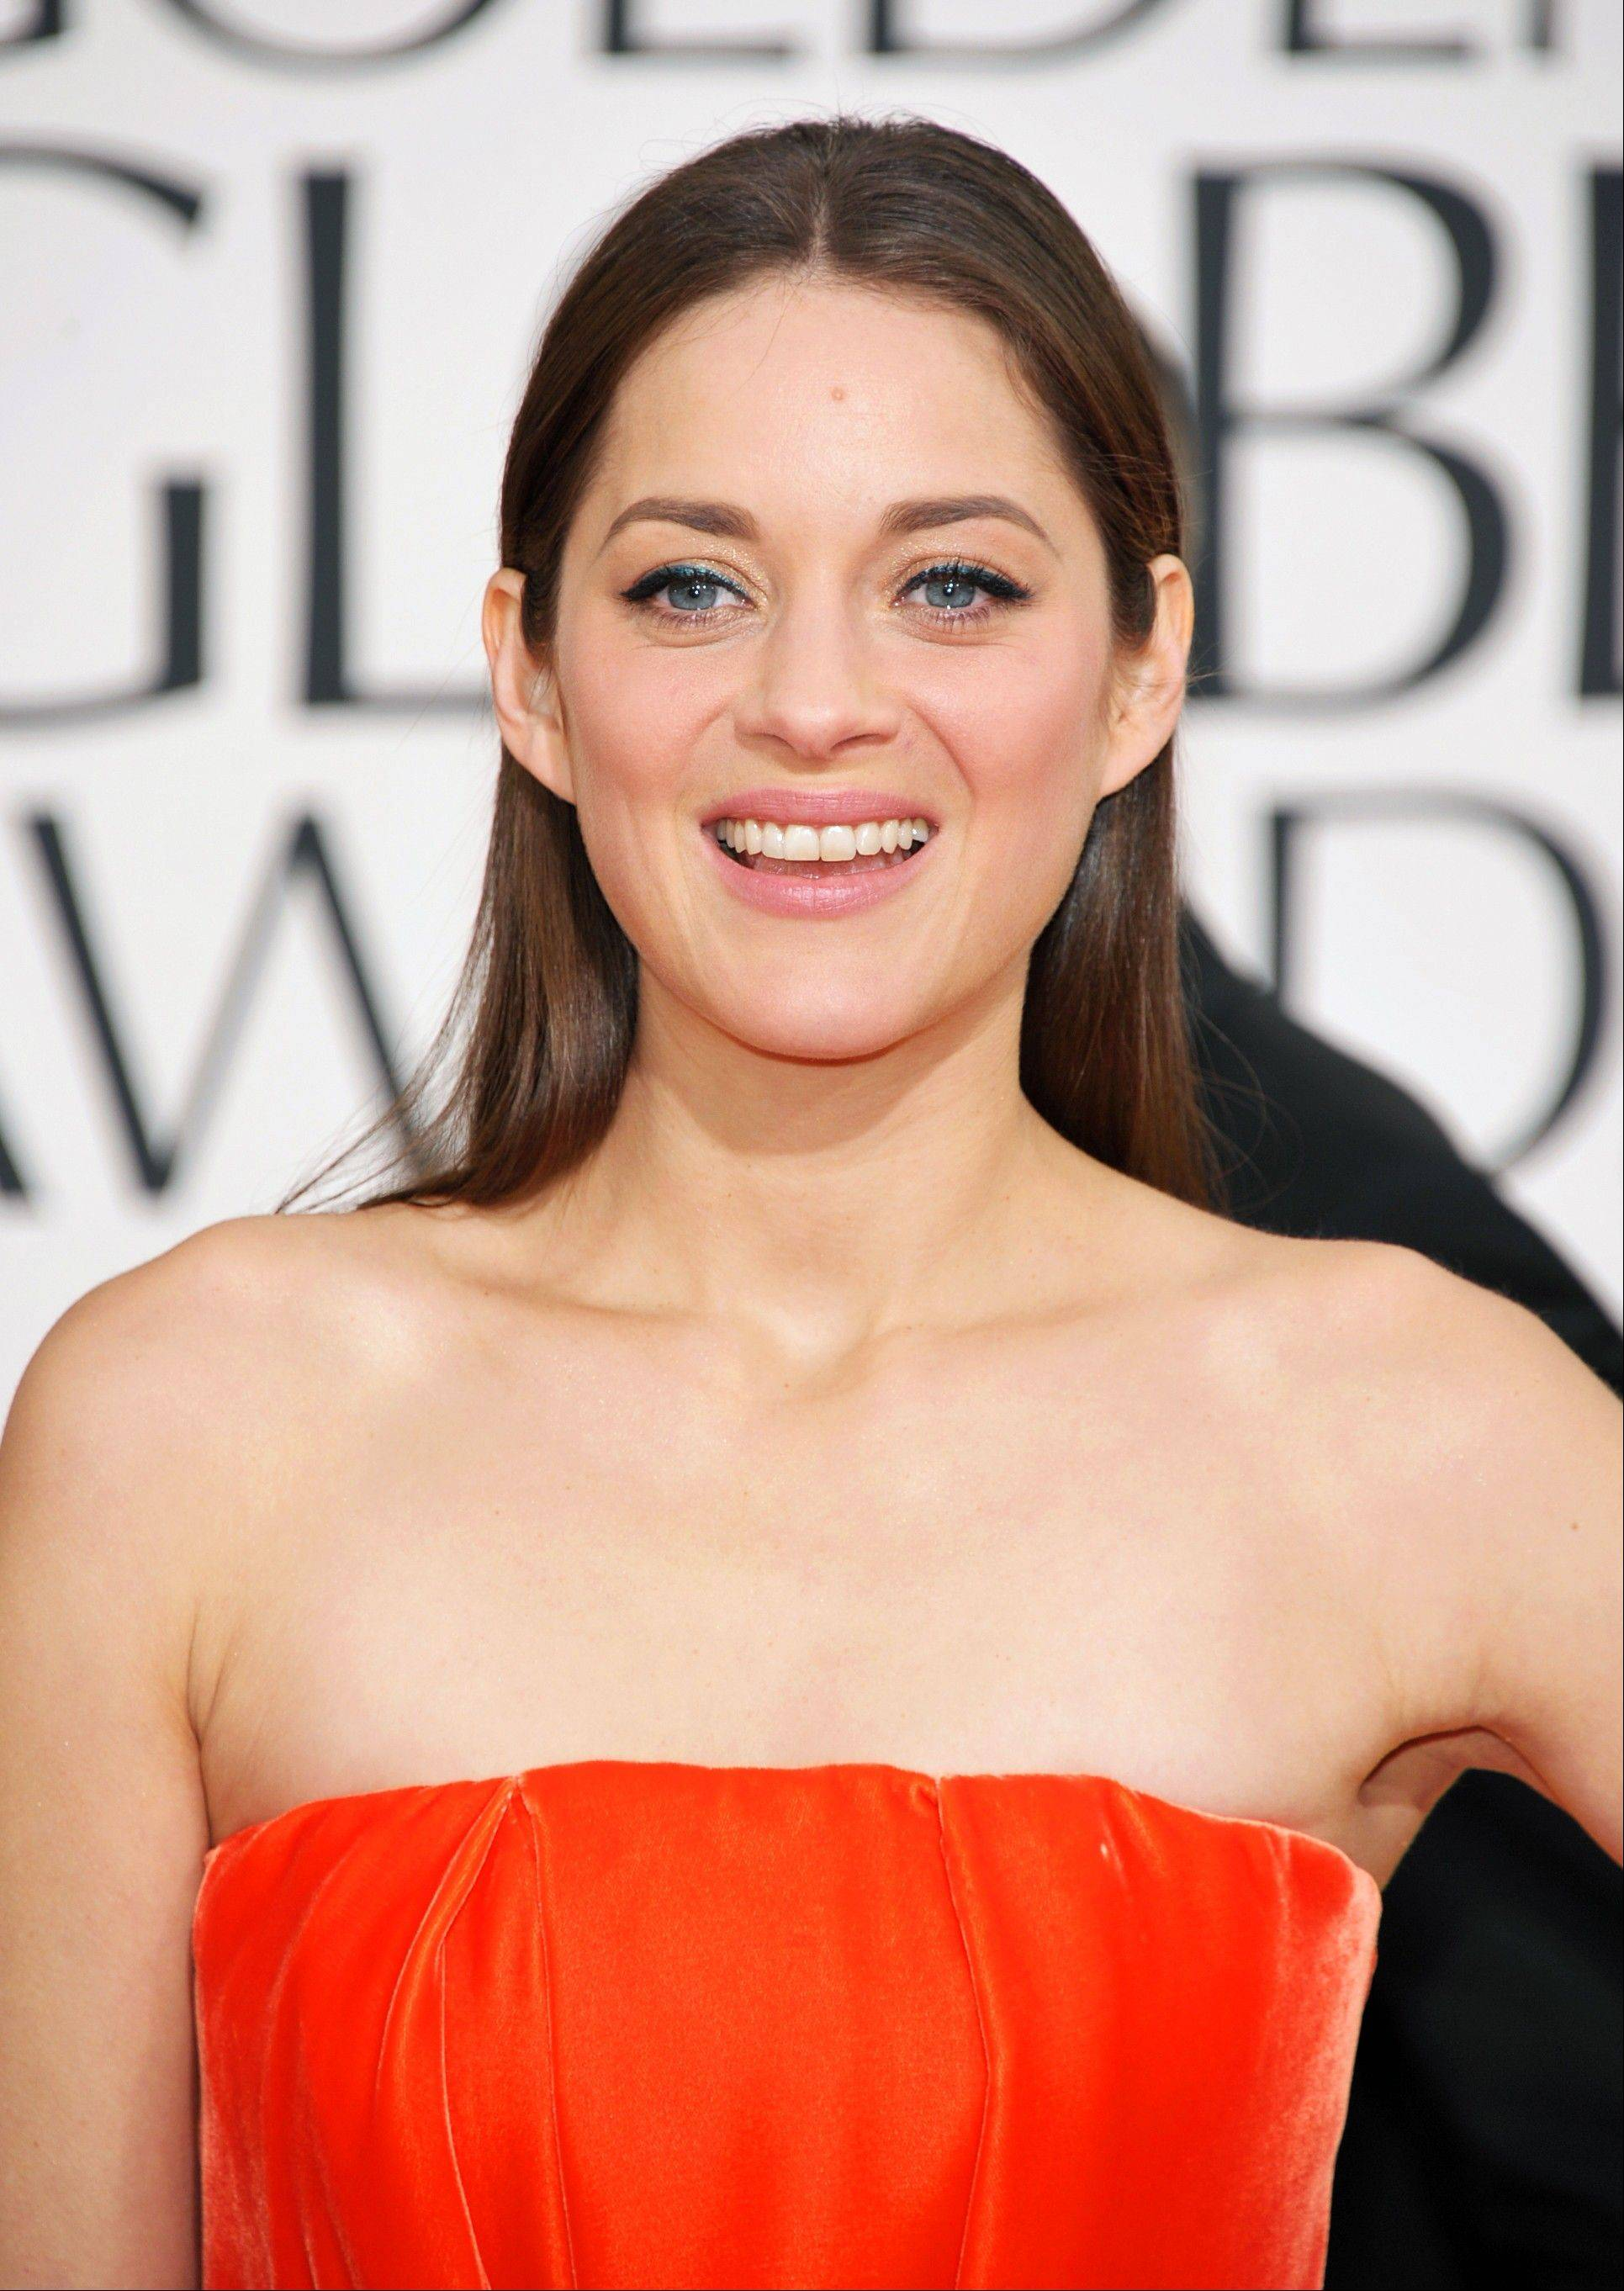 Marion Cotillard has been named the 2013 Harvard University Hasty Pudding Theatricals Woman of the Year.